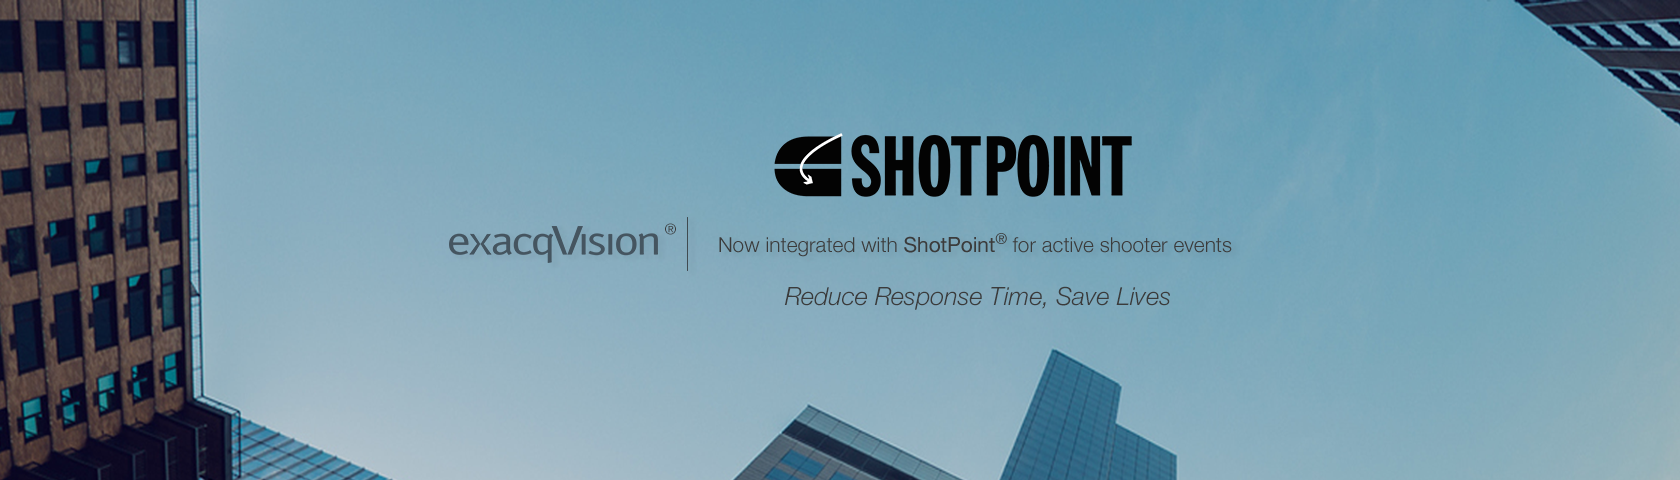 exacqVision and Shotpoint Integration